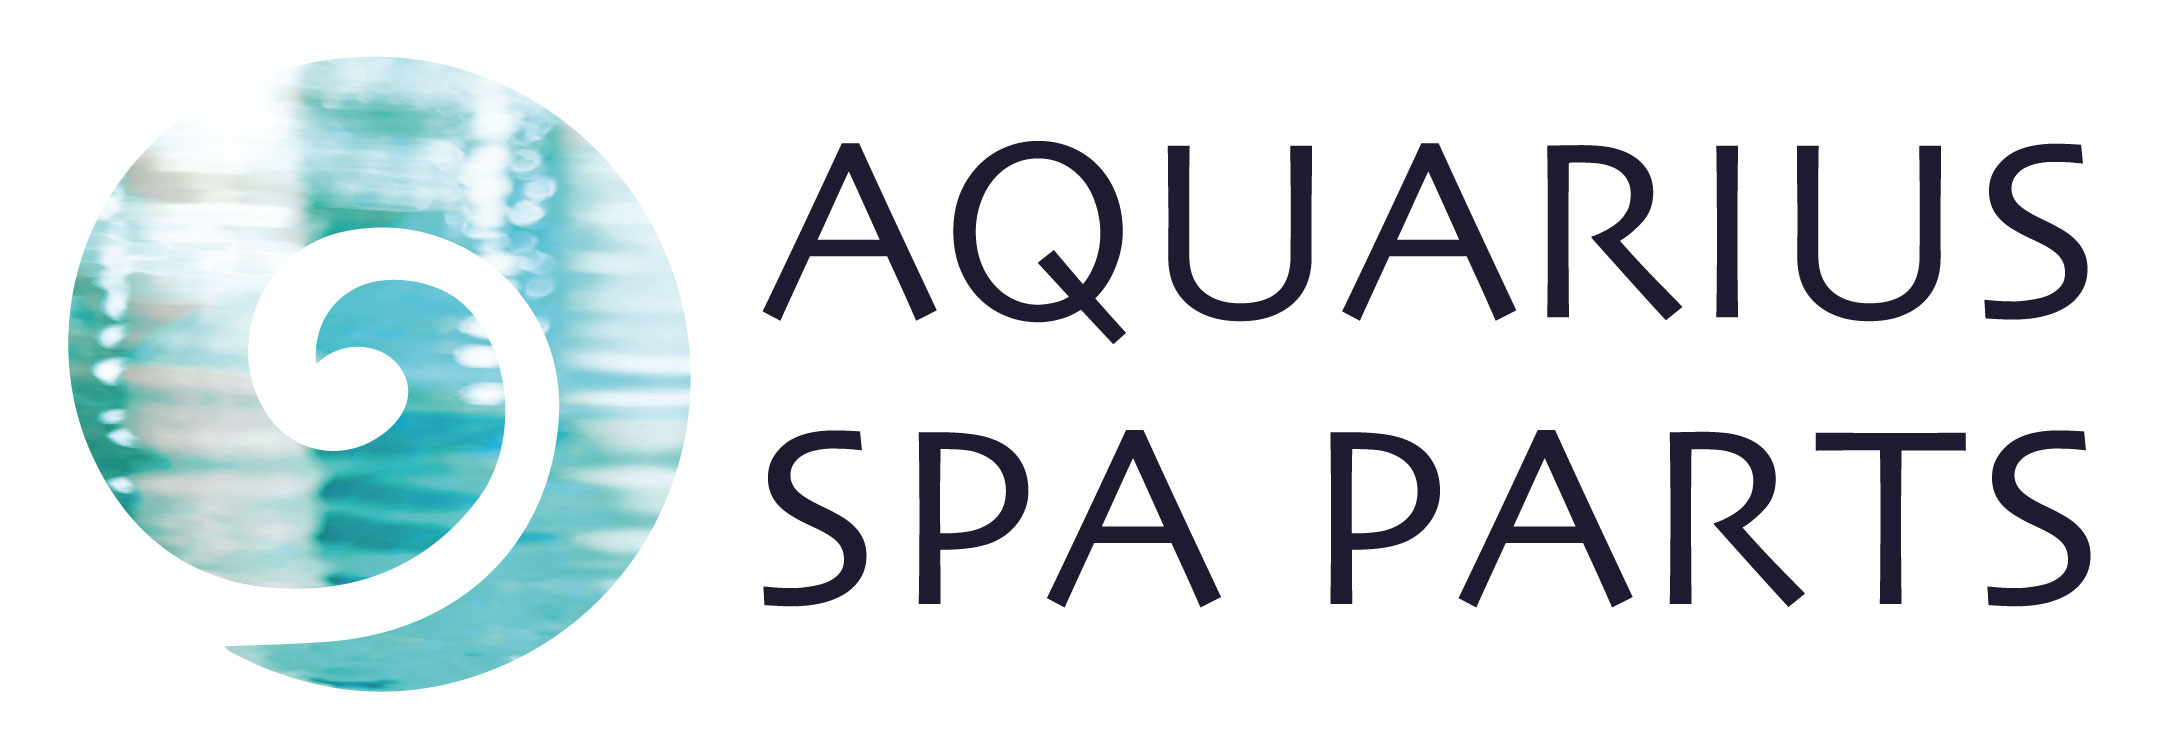 Aquarius Spa Parts Logo - Brand